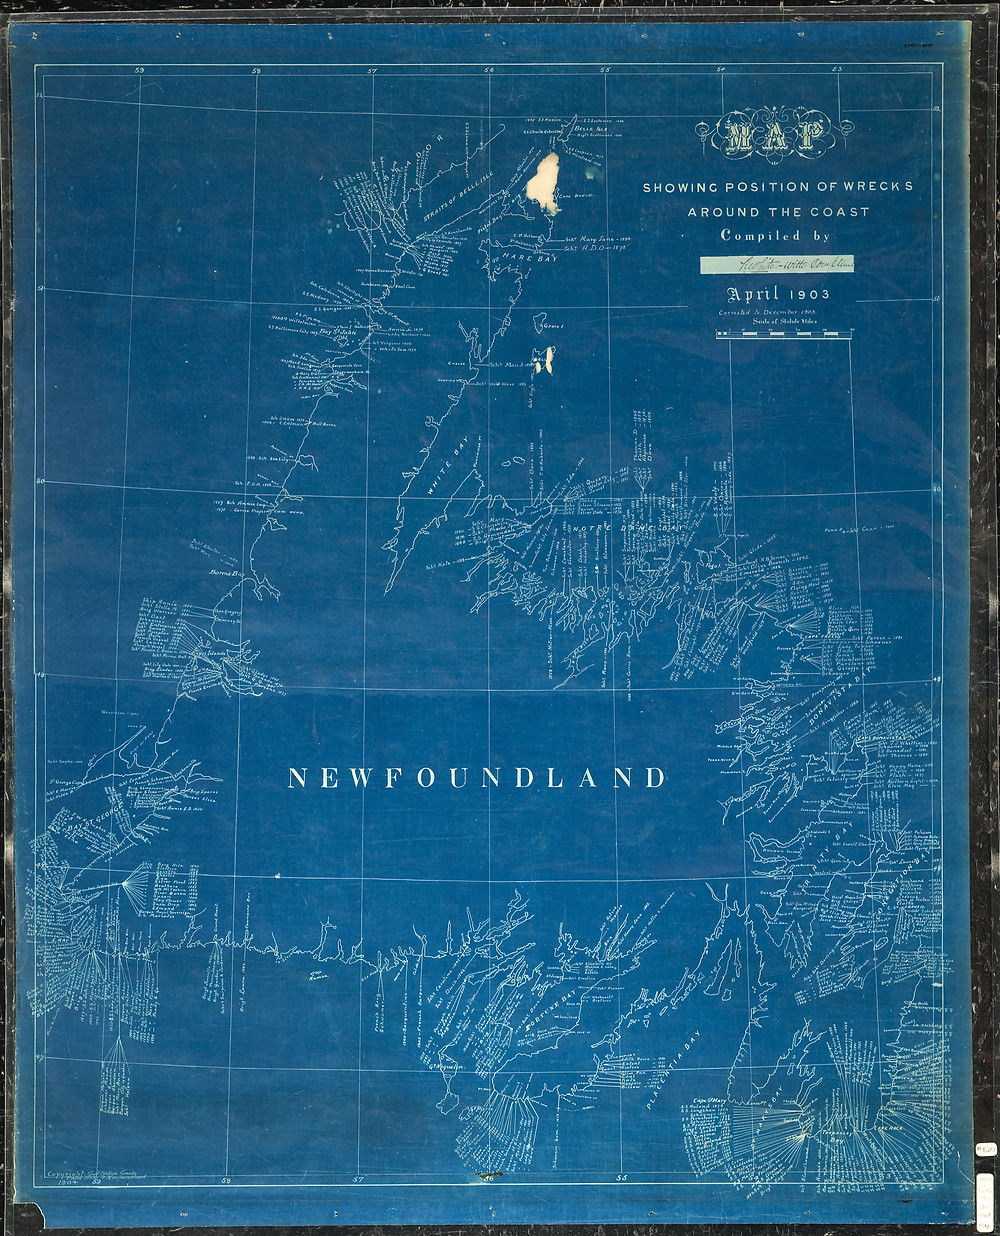 A map of Newfoundland showing the position of shipwrecks along the coast